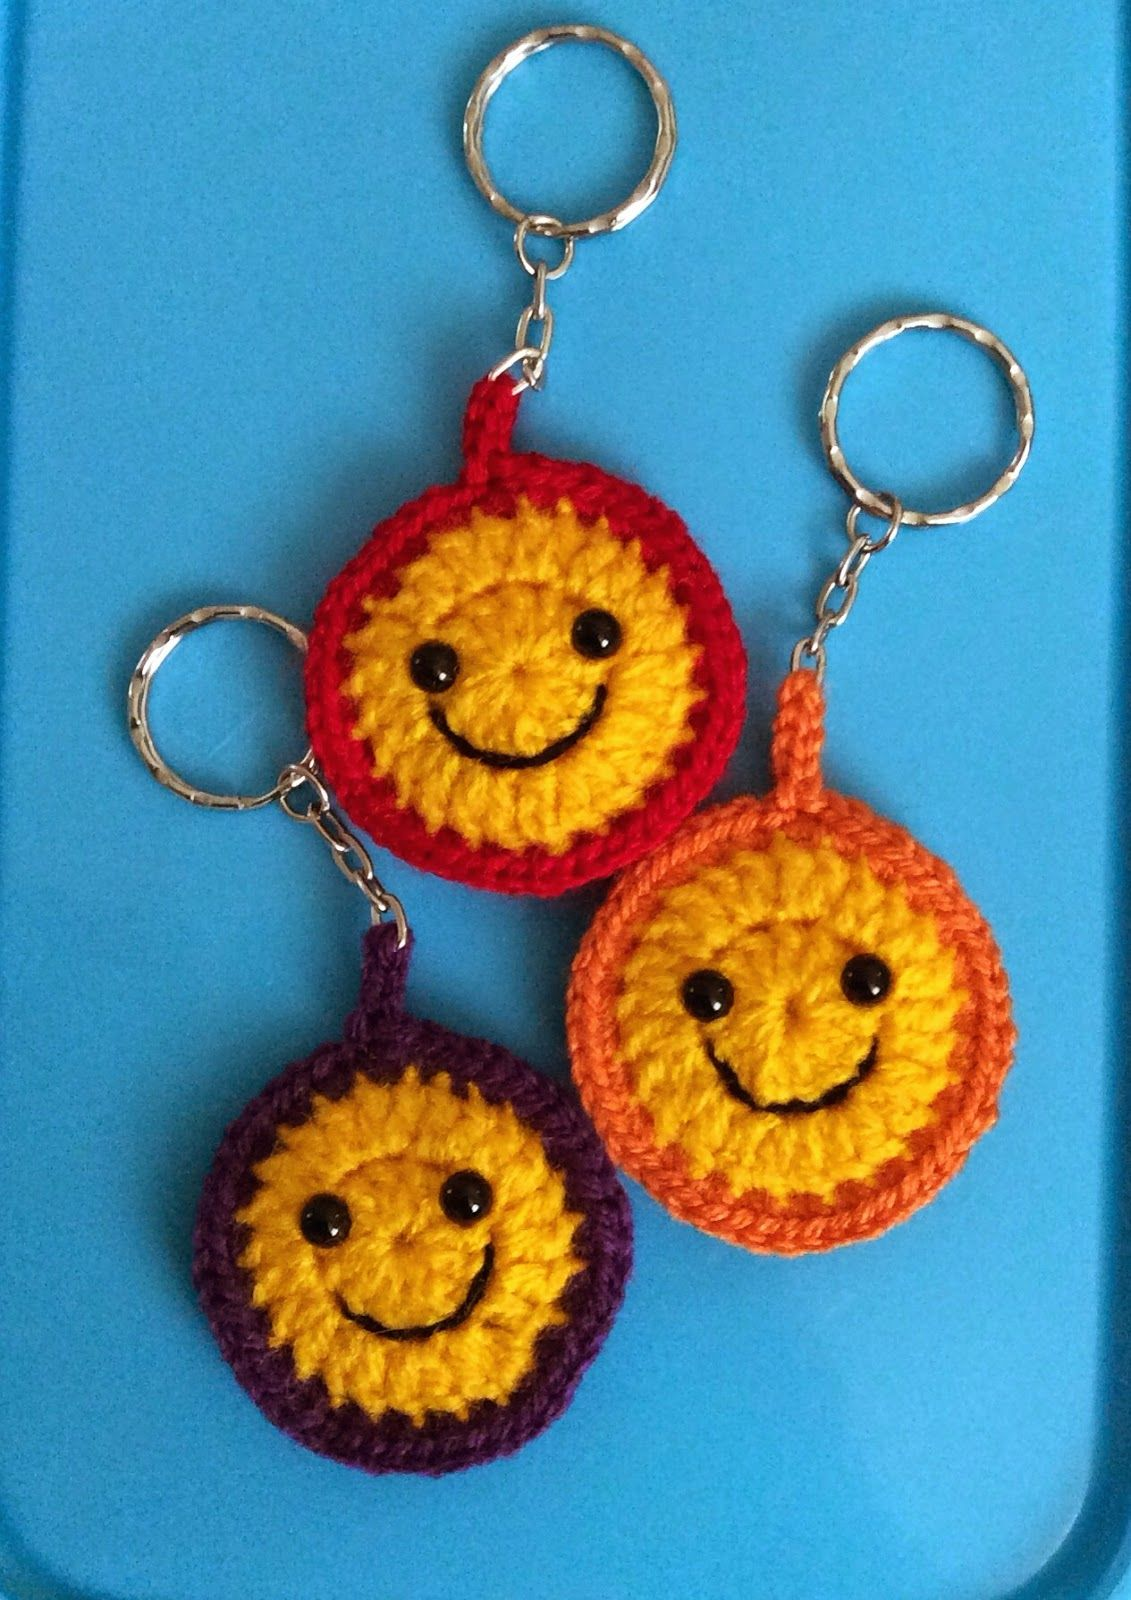 Lonemer Creations Smiley Keyring Pattern Crochet Bookmarks Key